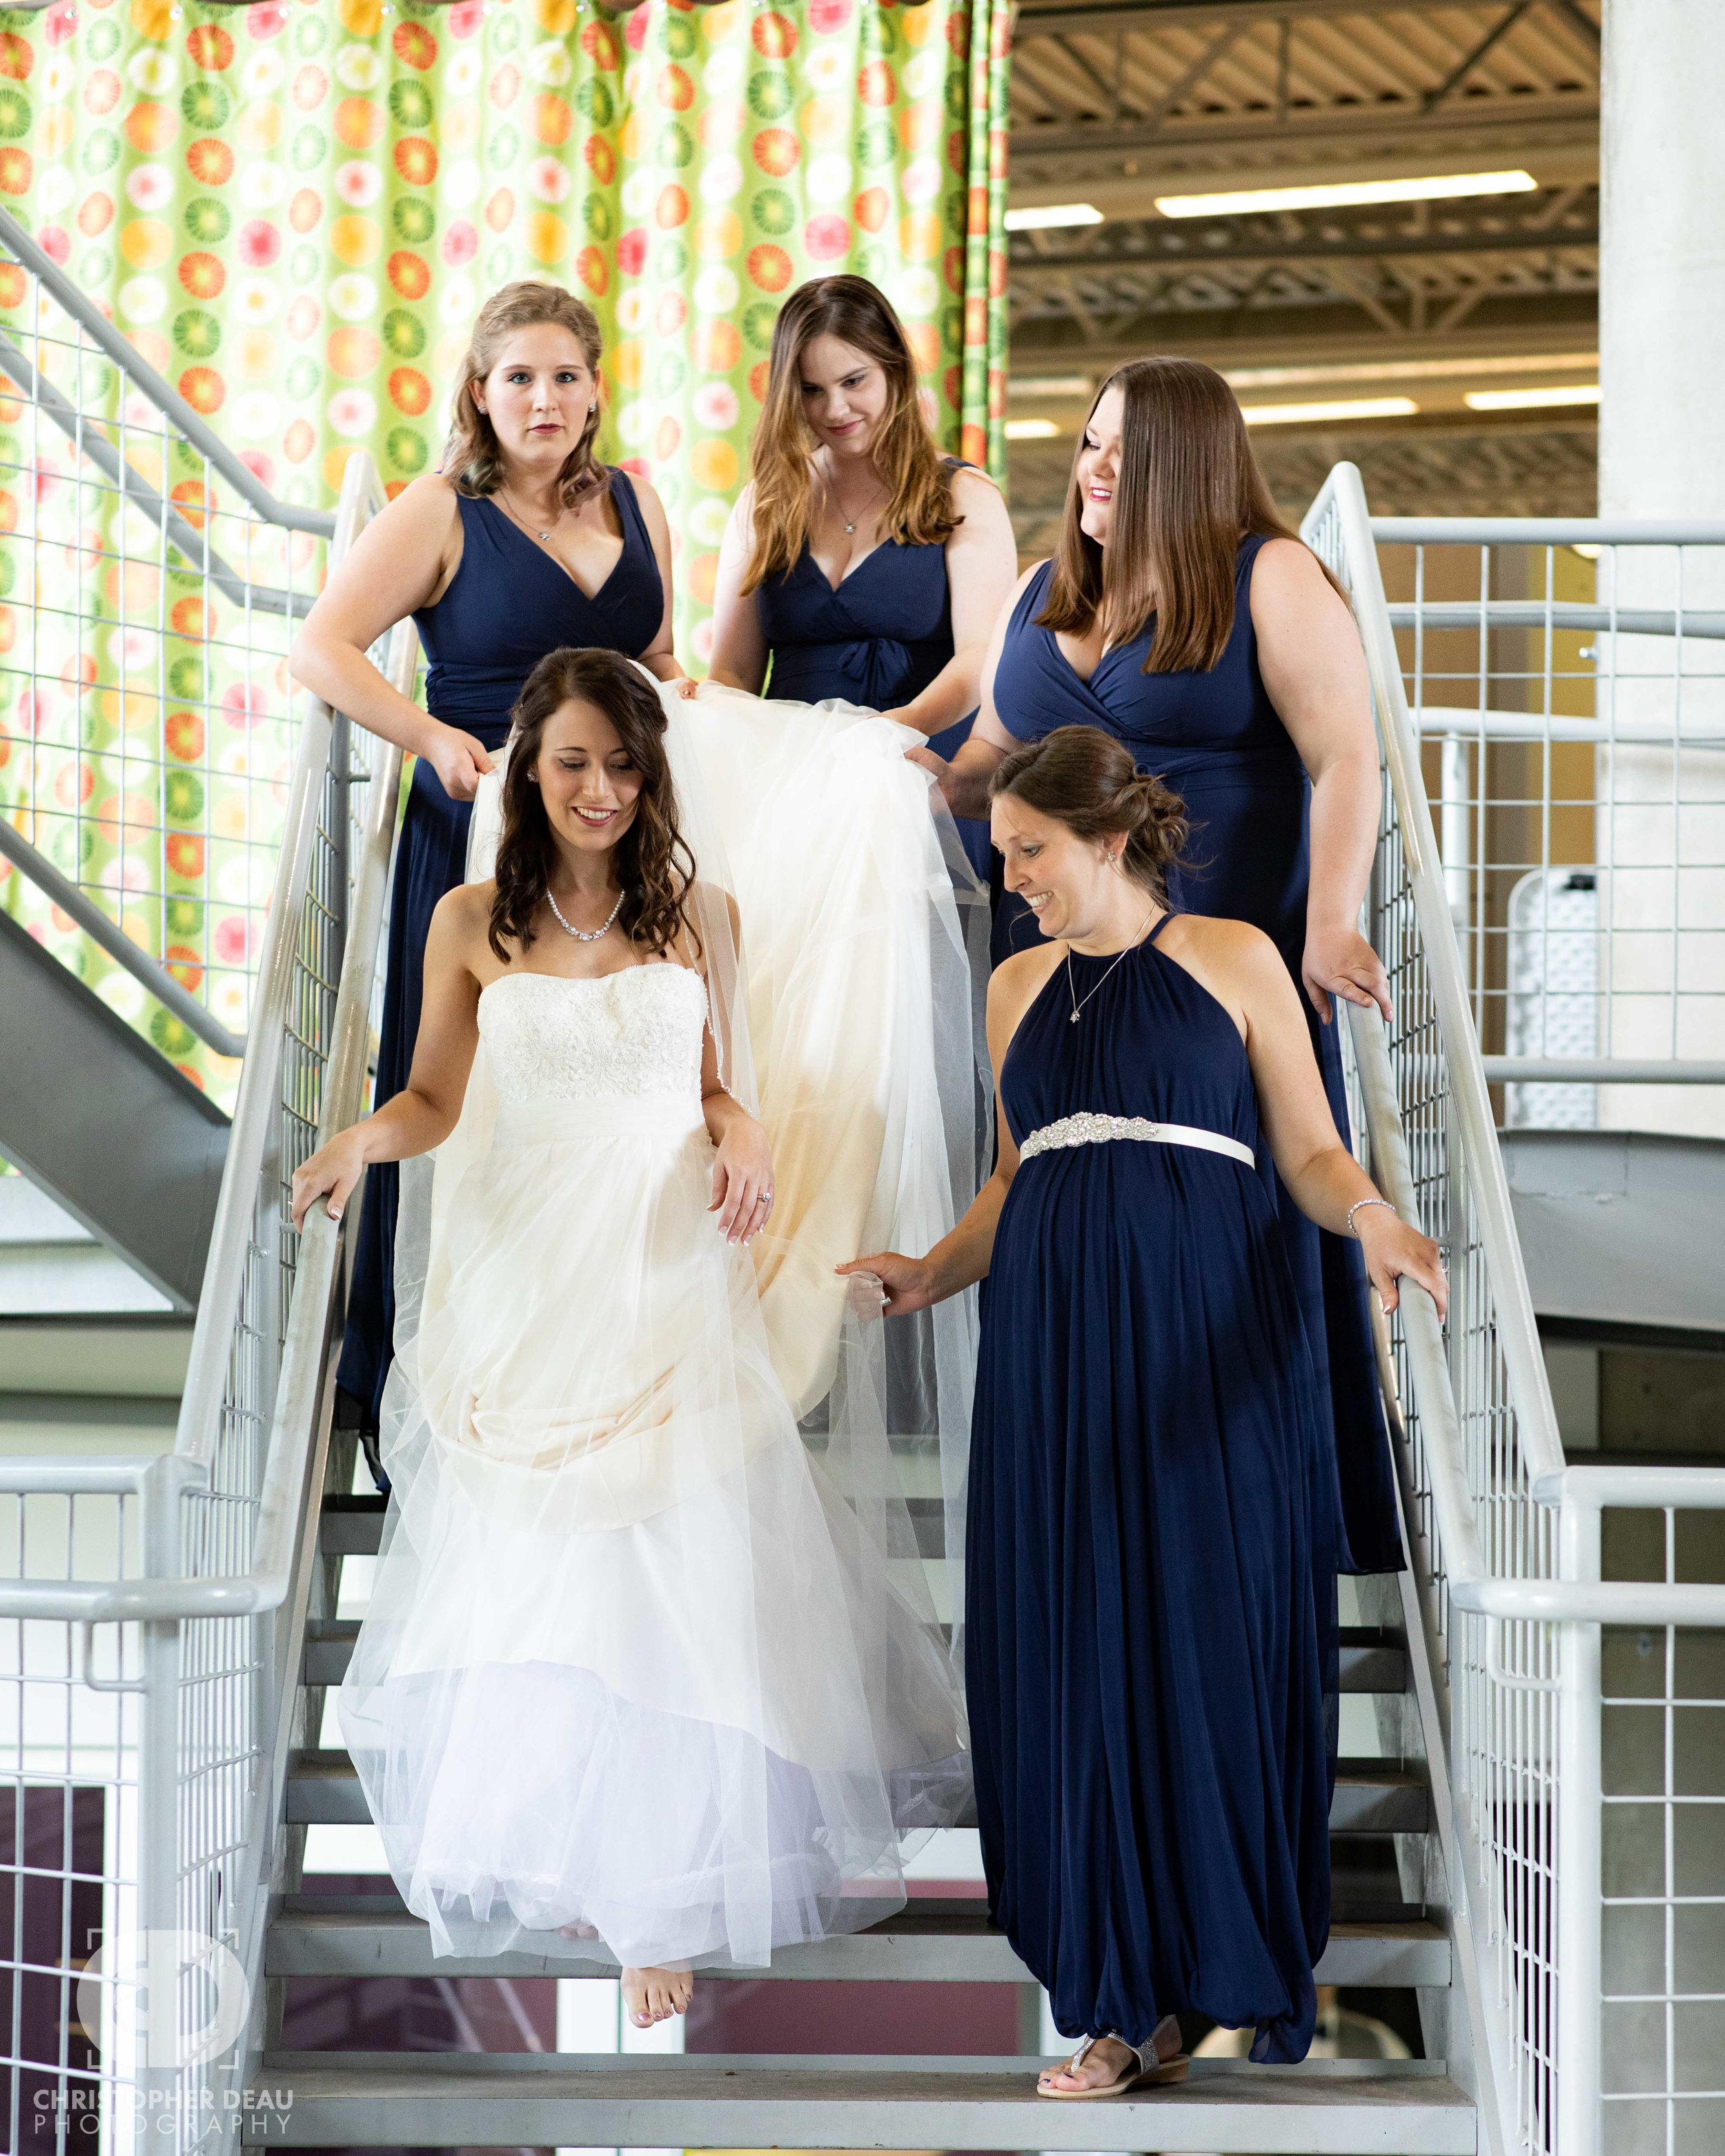 bridesmaids helping bride down the stairs